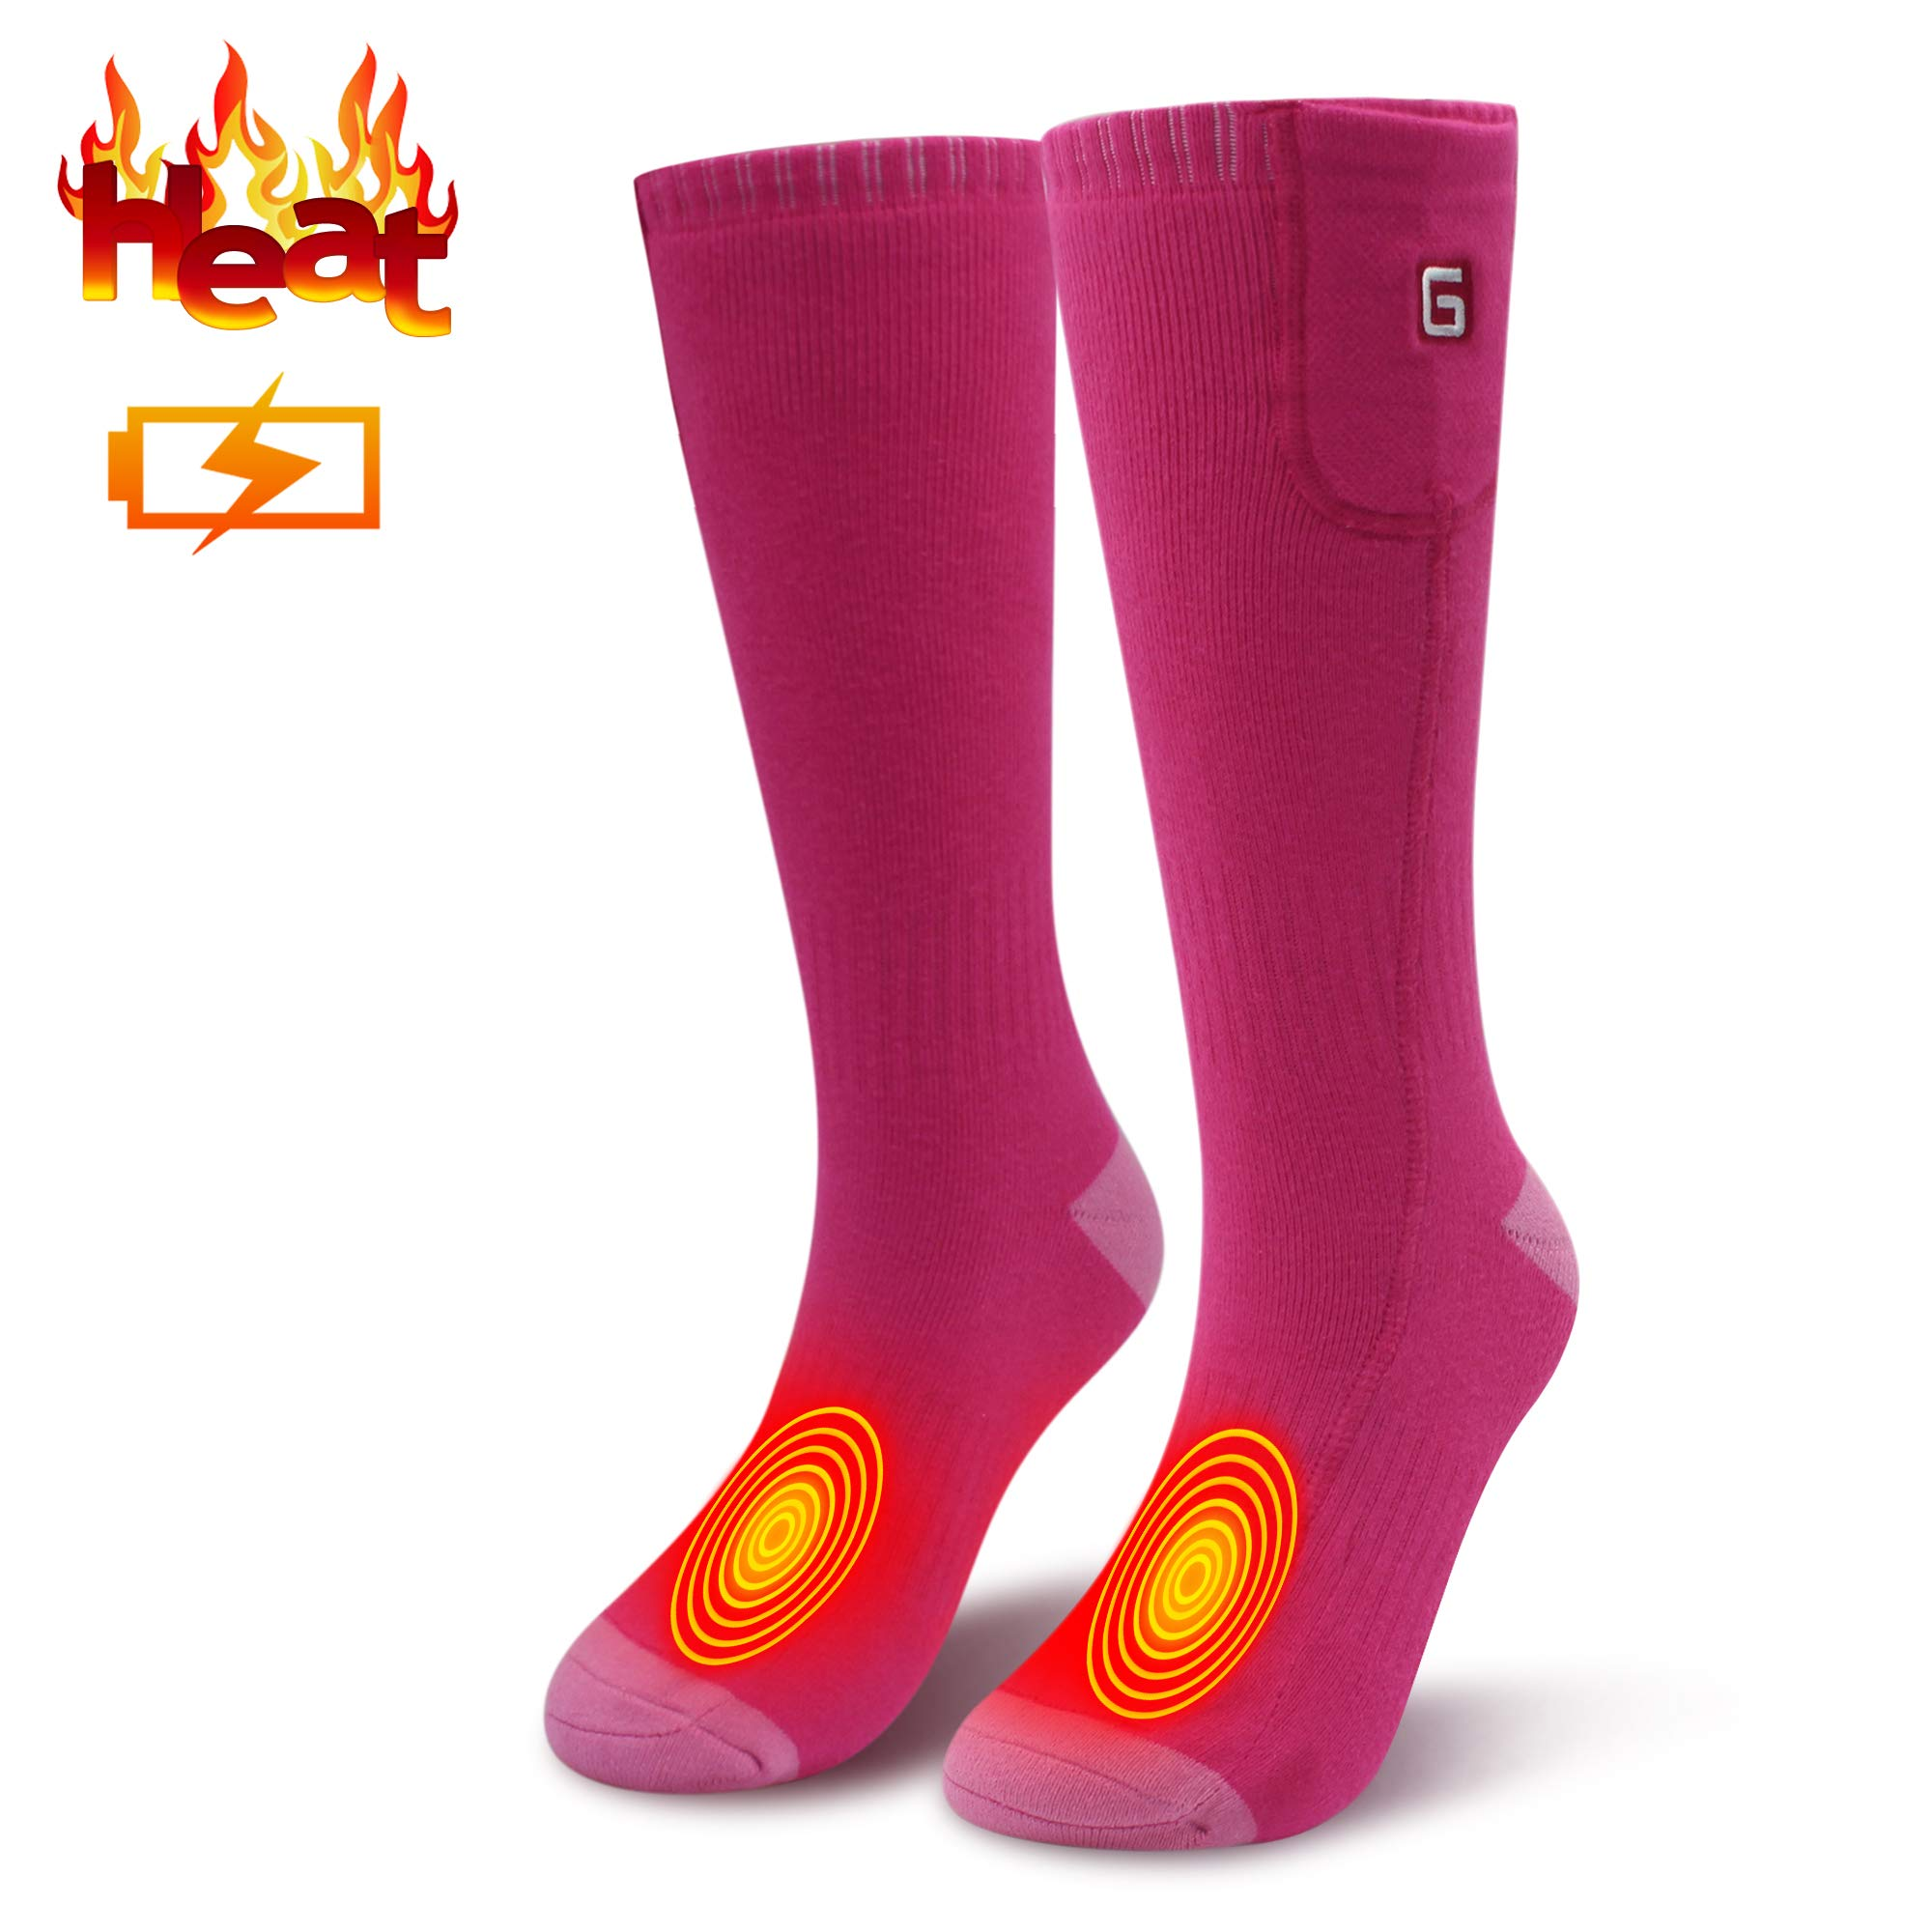 Electric Heated Socks for Men Thermal Socks Rechargeable Battery Foot Warmers Winter Ideal Presents for Men Women Perfect for Indoor Outdoor Sport Fishing/Hiking/Sleeping (Pink) by MMlove